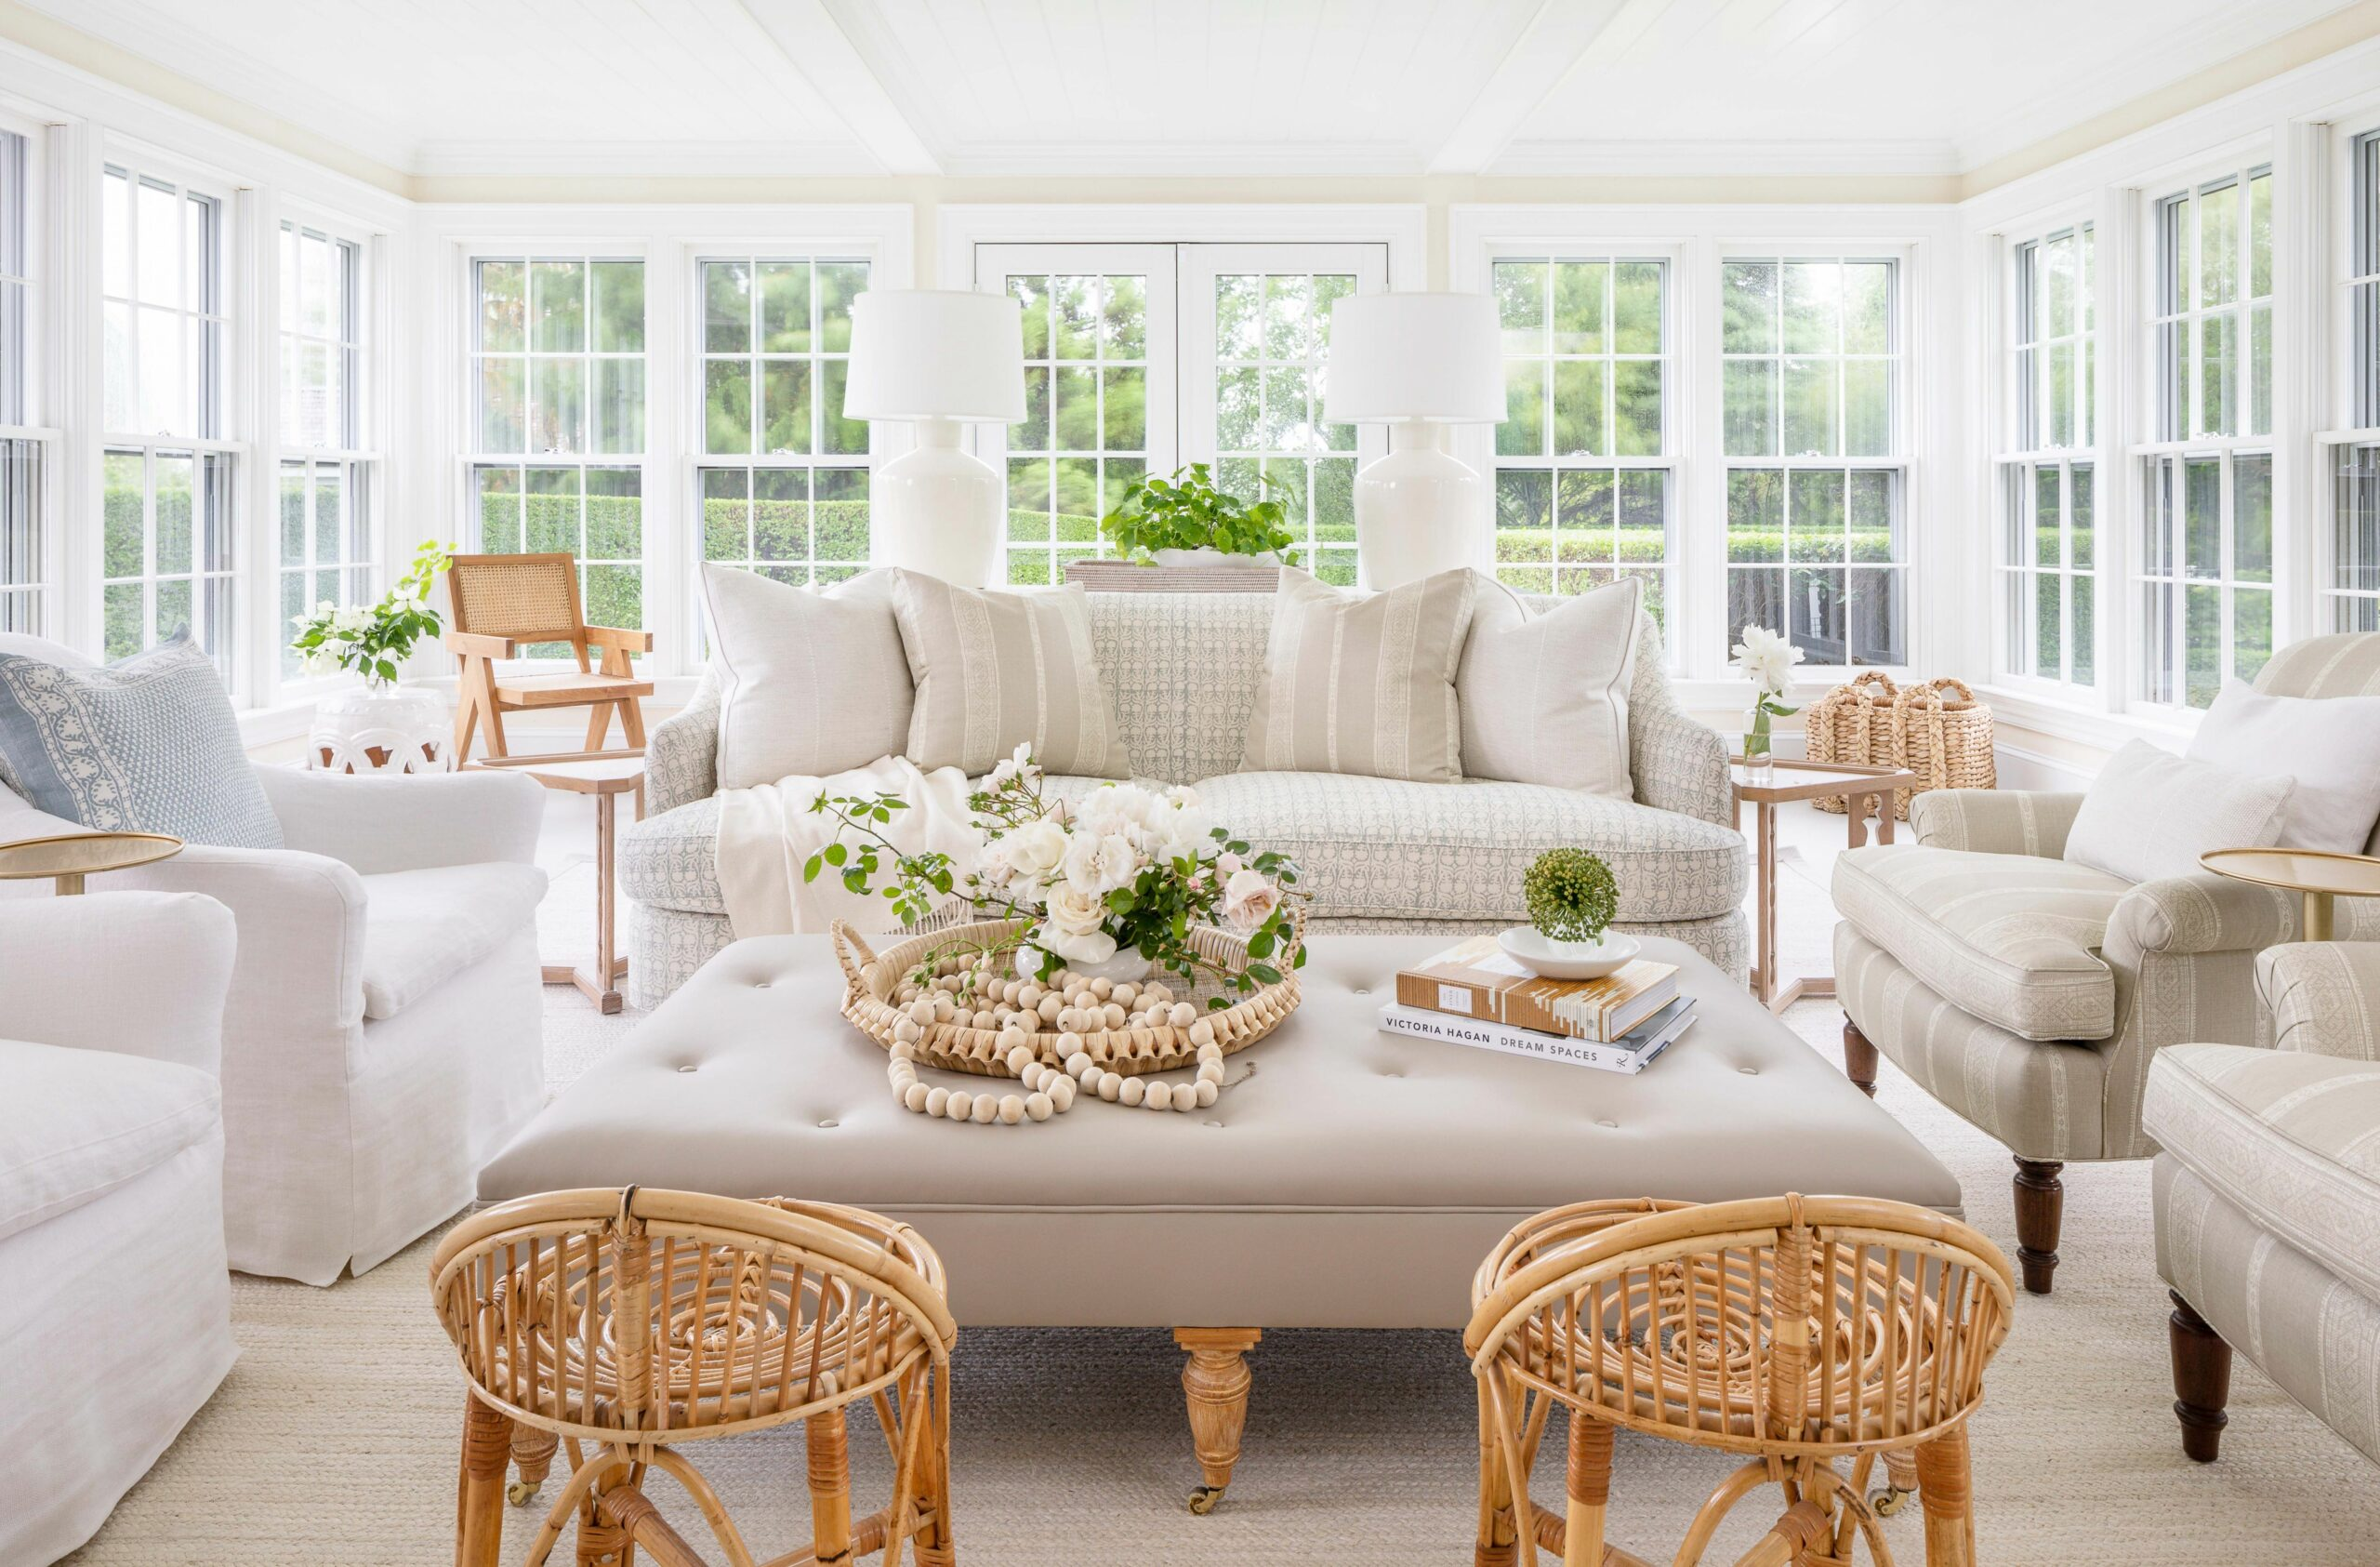 Home Decorating Trends 10 - House Beautiful Next Wave Designer ...